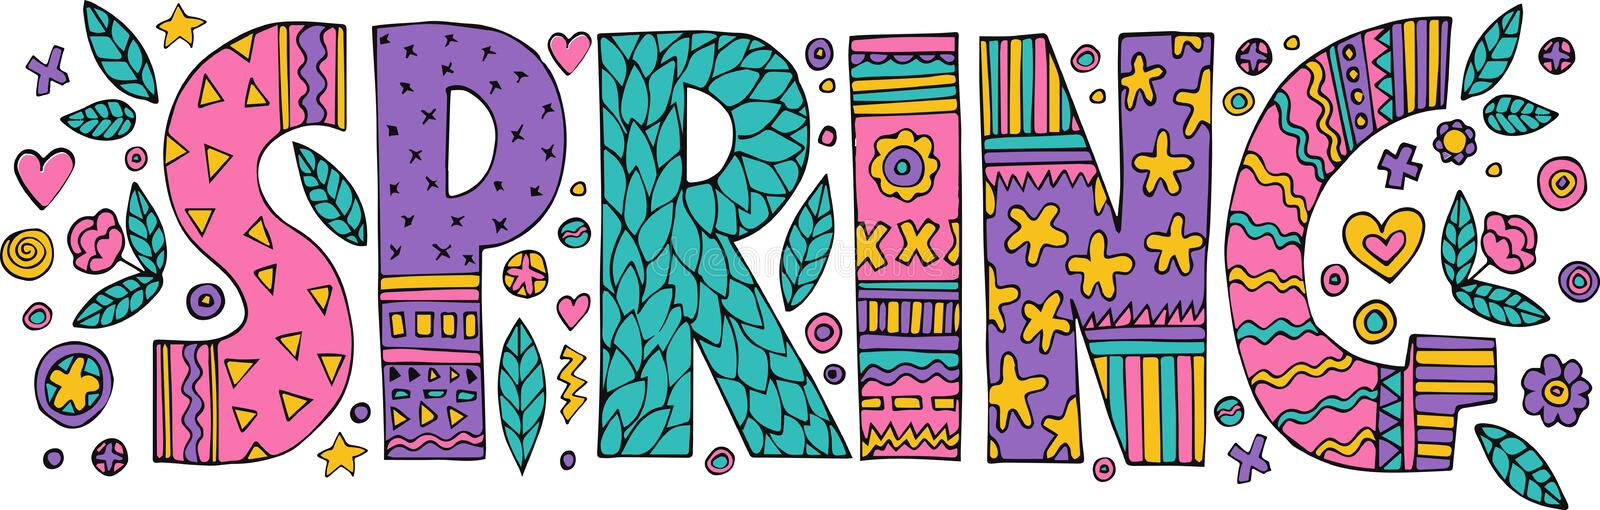 Colorful Spring lettering royalty free illustration